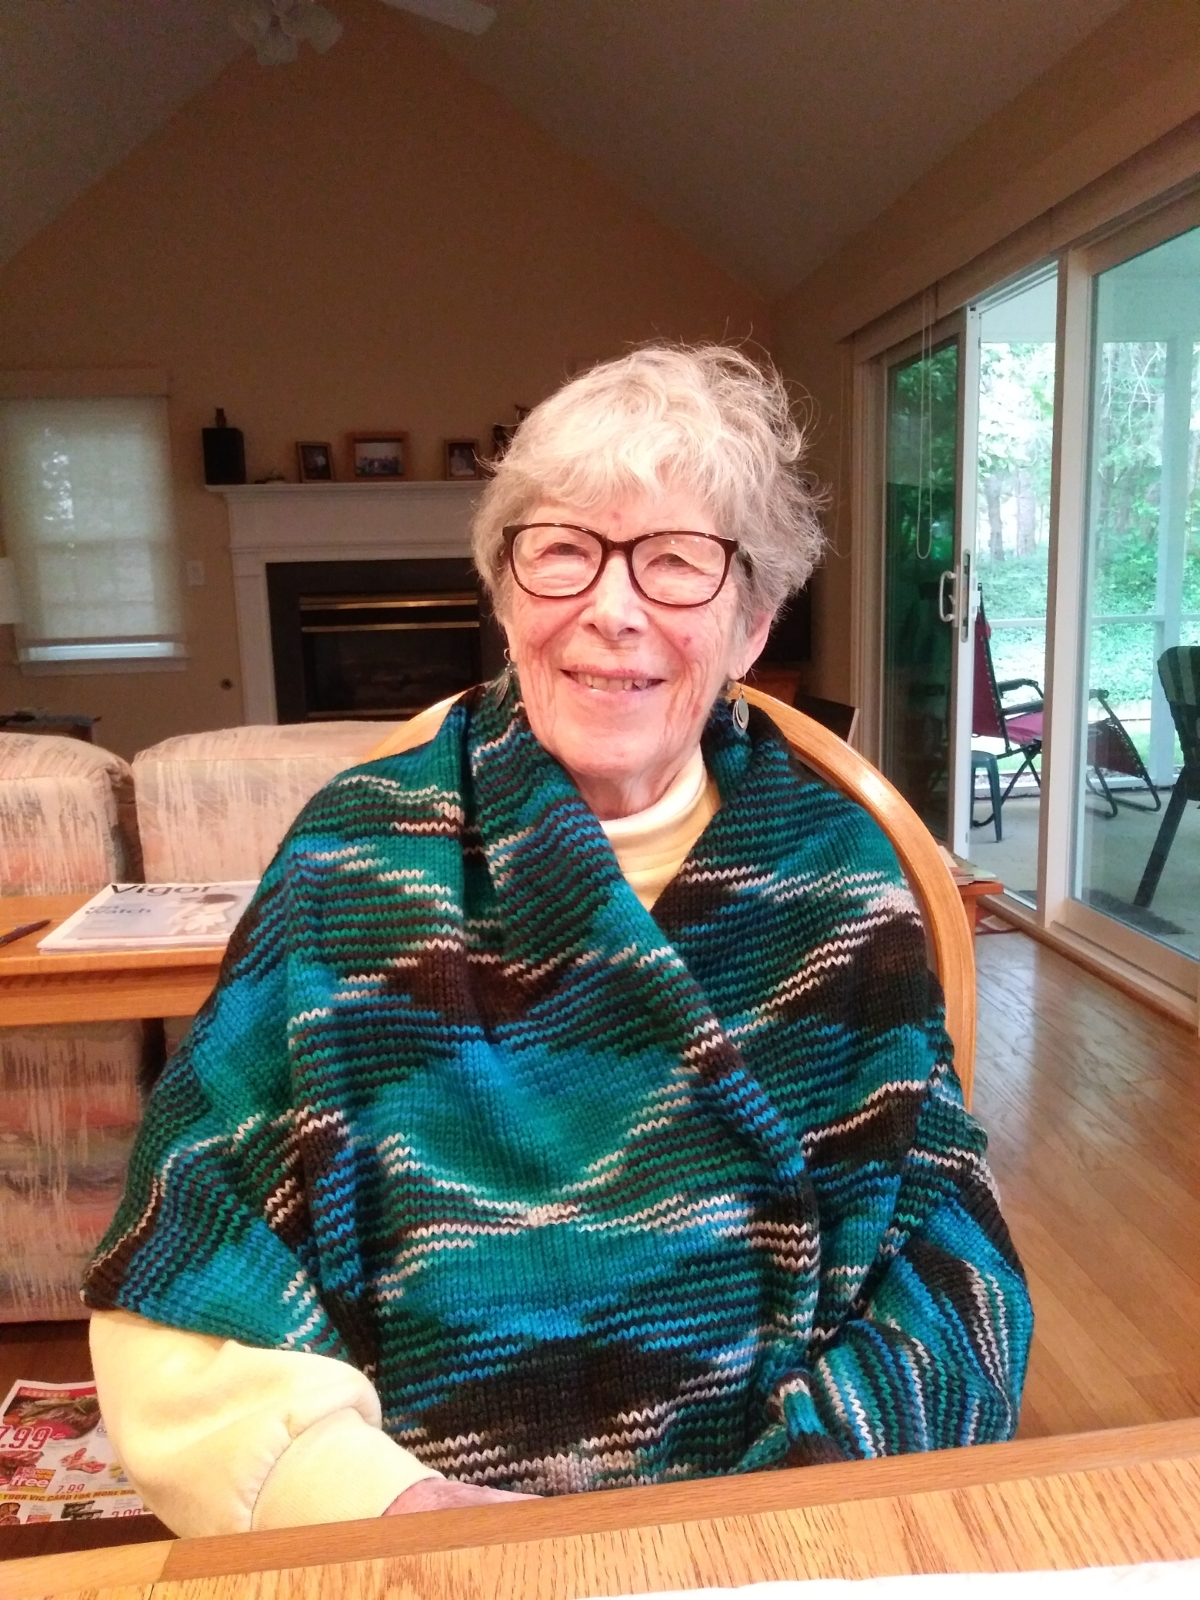 Pirate's grandma models her new teal and brown wrap.